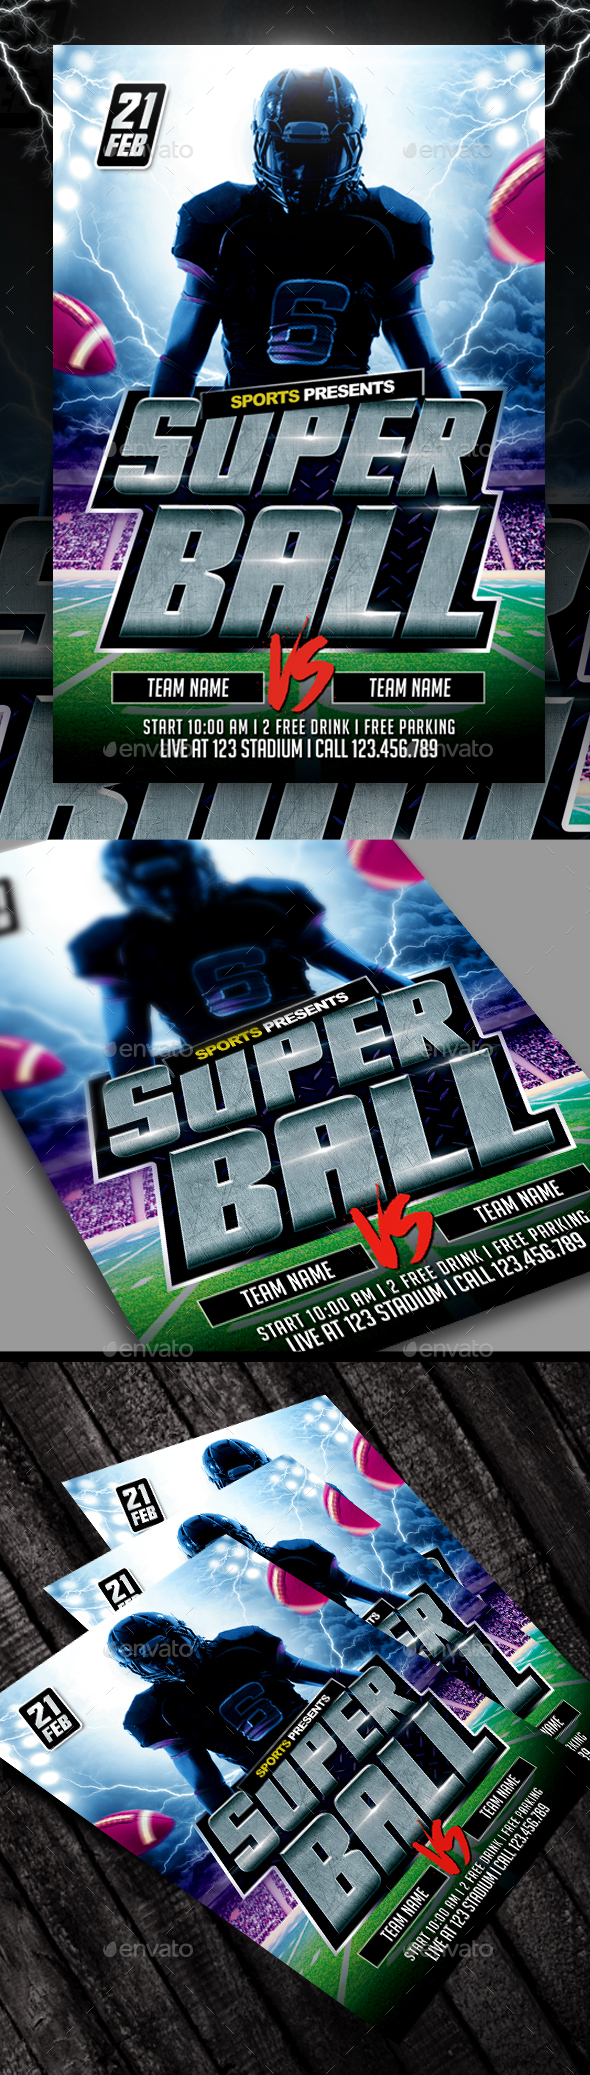 Super Ball American Football Flyer - Sports Events